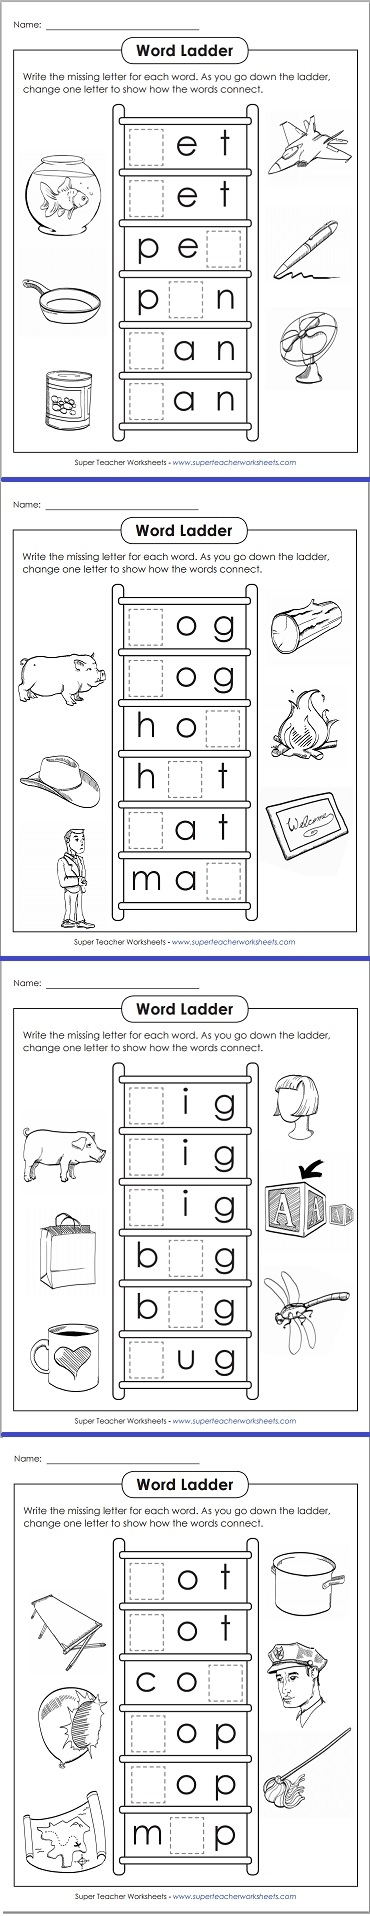 Word Ladder Worksheets